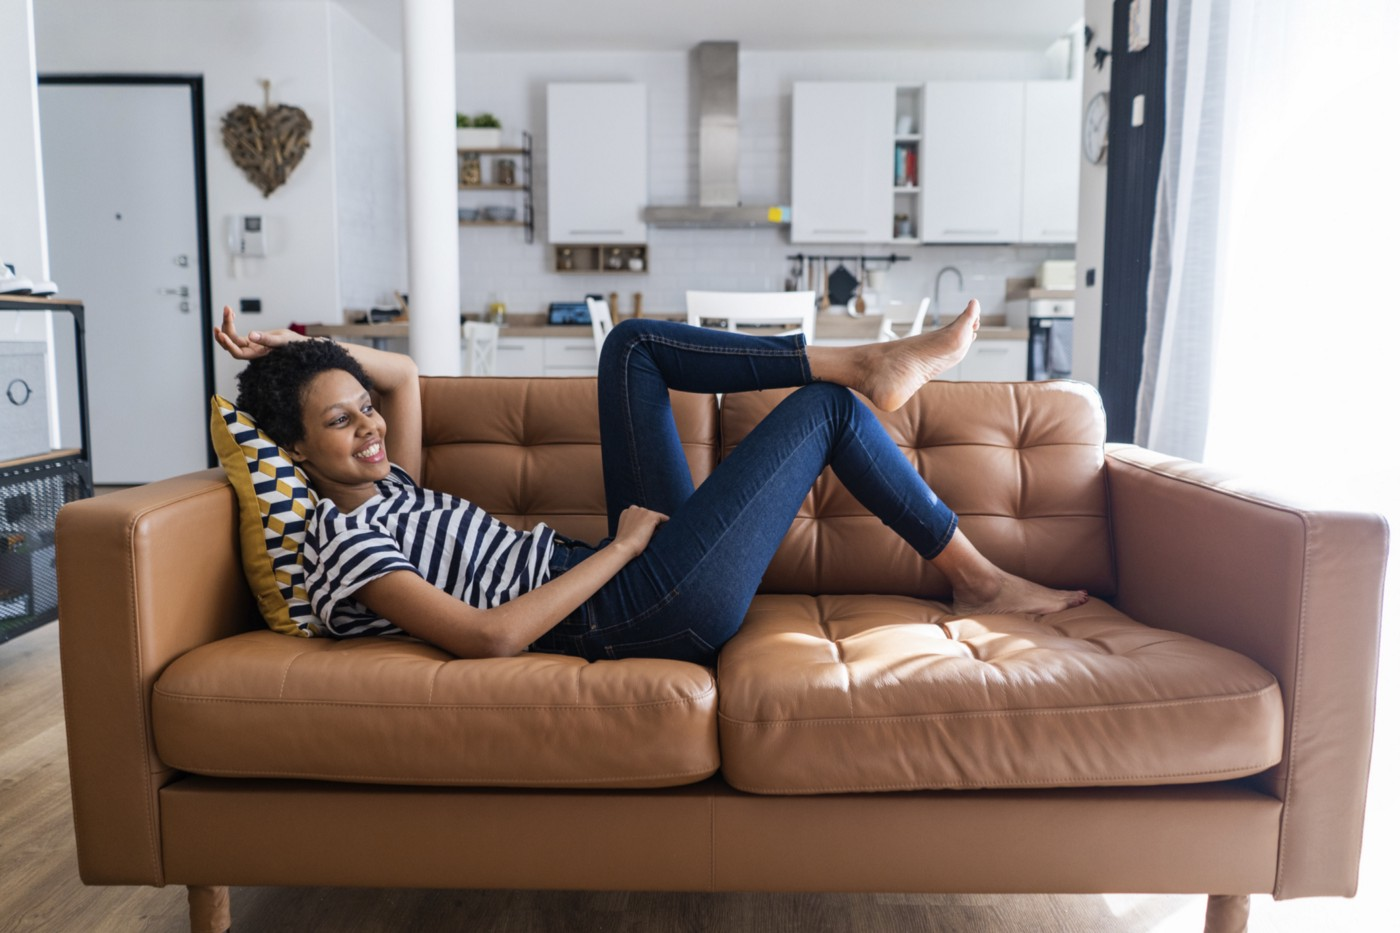 Black woman relaxing at home on her sofa.